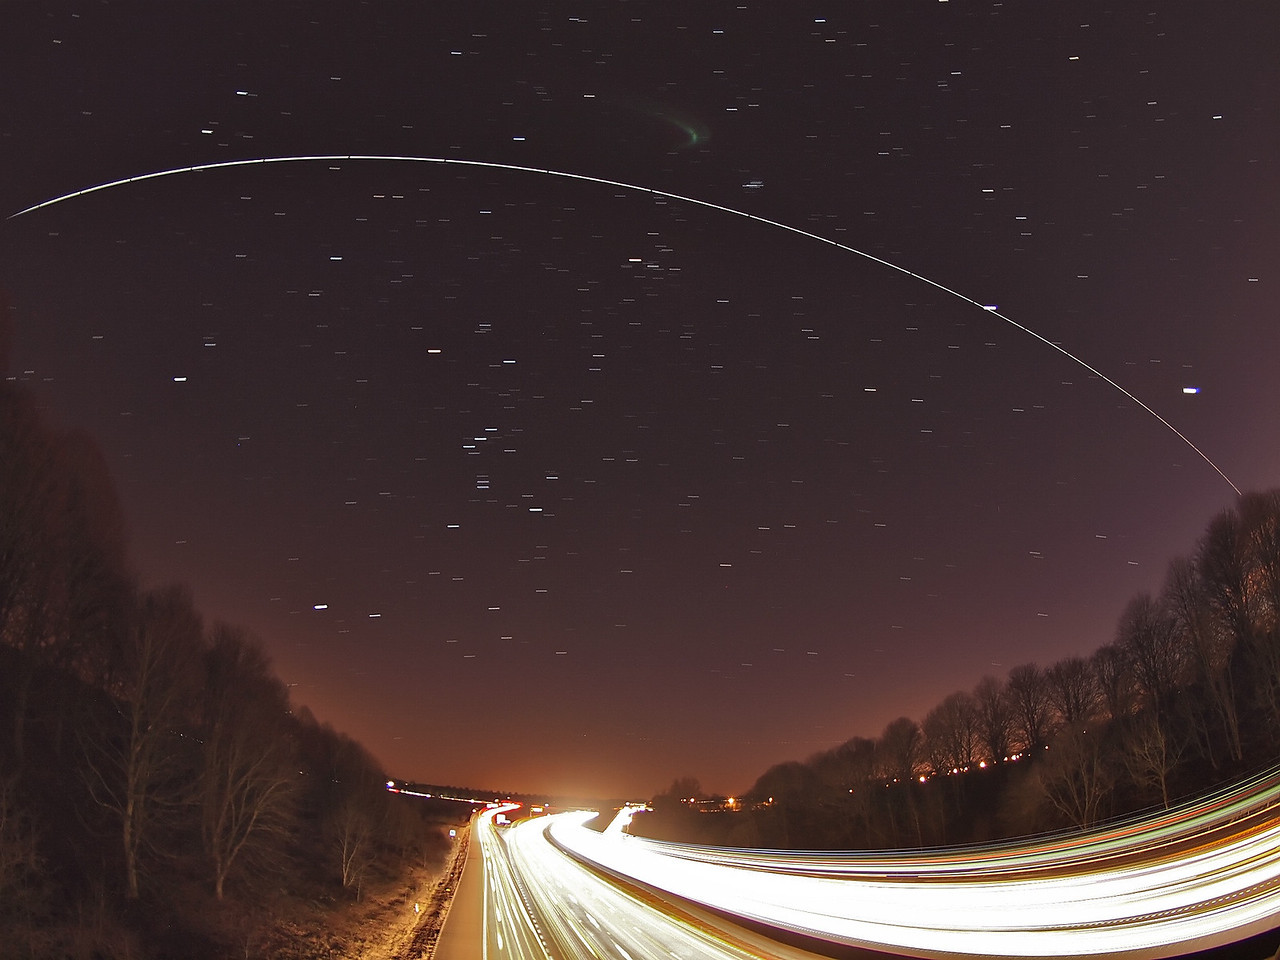 Feb 19 2012. The International Space Station (ISS) 1845hrs pass over UK skies. The super bright ISS travelling at 17,500mph flies over the more sedate 70mph motorway traffic at Lutterworth, Leics. The ISS started in the west (right) passed the first bright planet Venus (bottom right) and then almost crossed straight through Jupiter (next bright up) as it made its way east (left) and above the Orion constellation. To capture this photo I was perched on top of a motorway bridge and placed camera on tripod shooting a succession of 10s exposures. The final composite contains approx 25 images and stacked using StarStax software. Captured with Olympus E5, 8mm fisheye, F4, 10s, ISO 500.